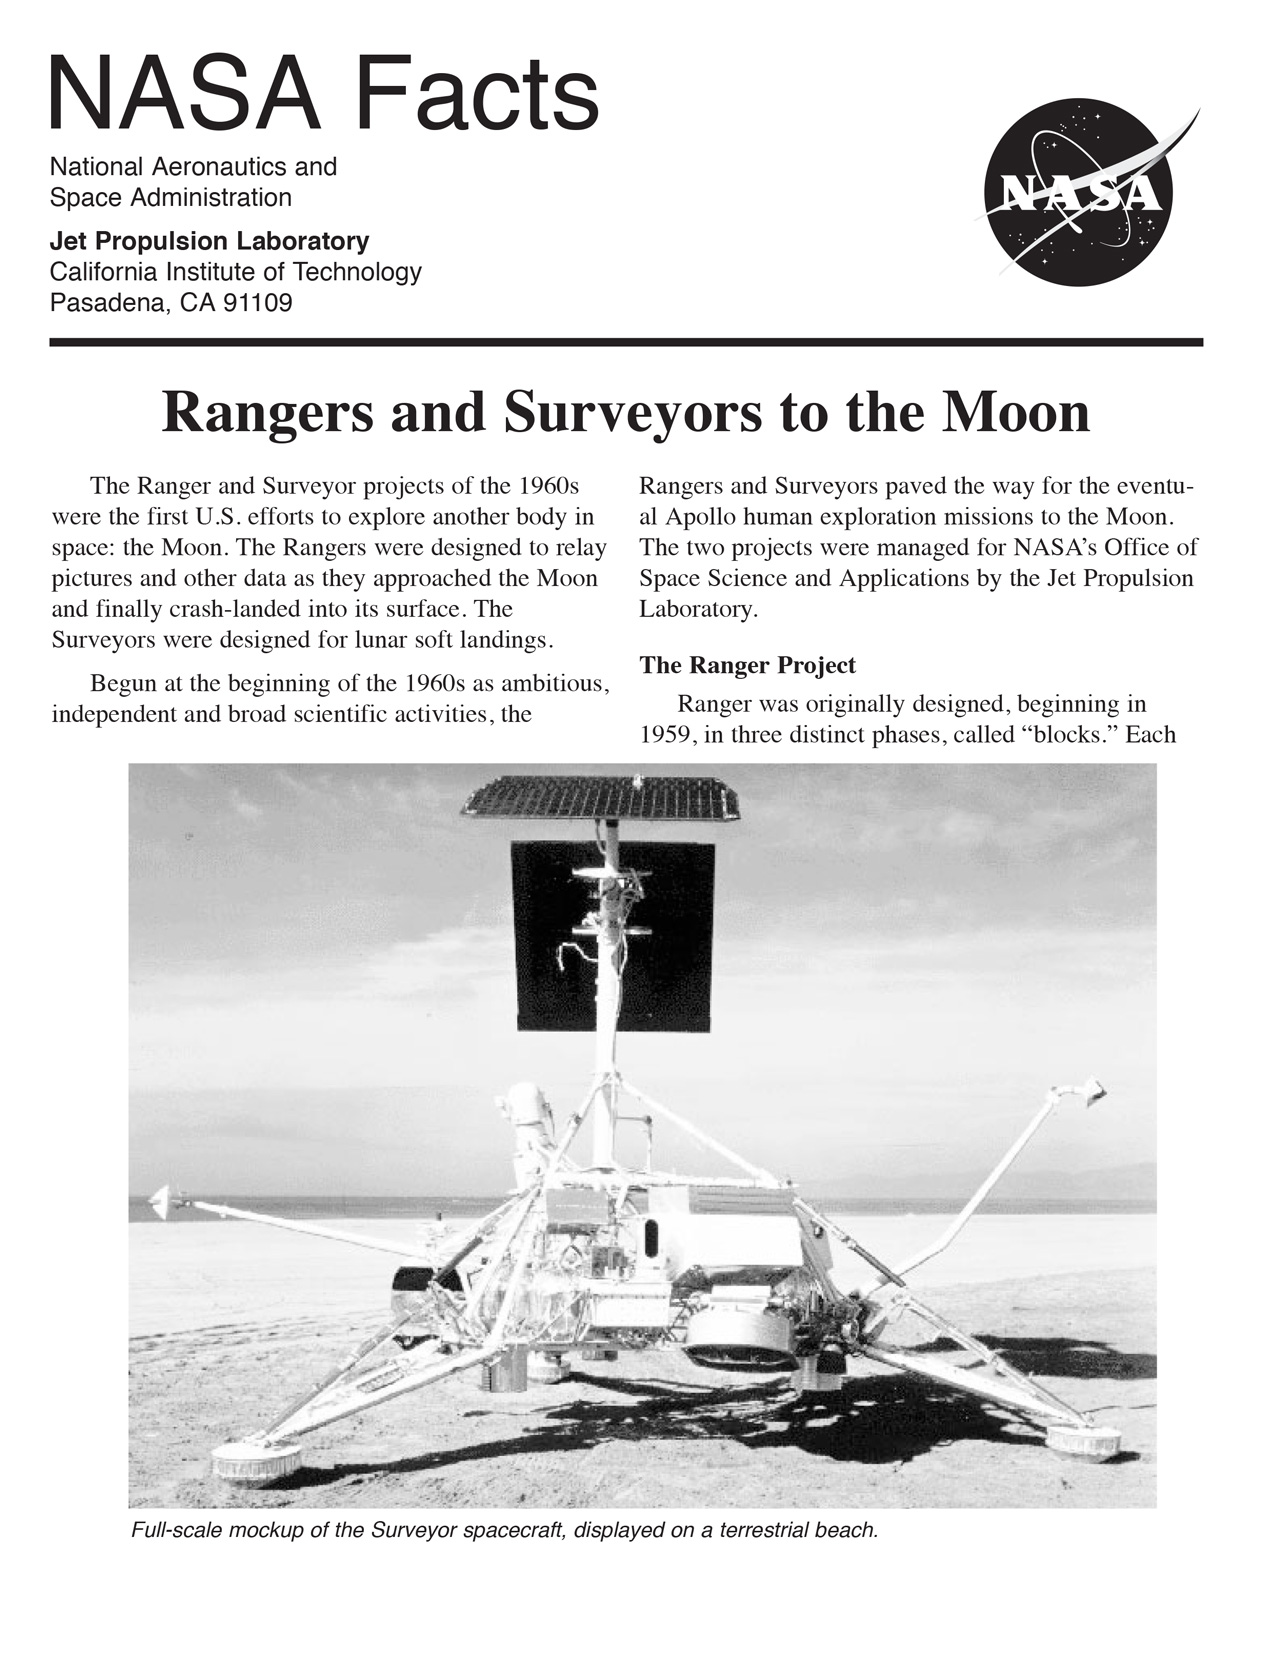 Fact sheet about two 1960s Moon mission programs.